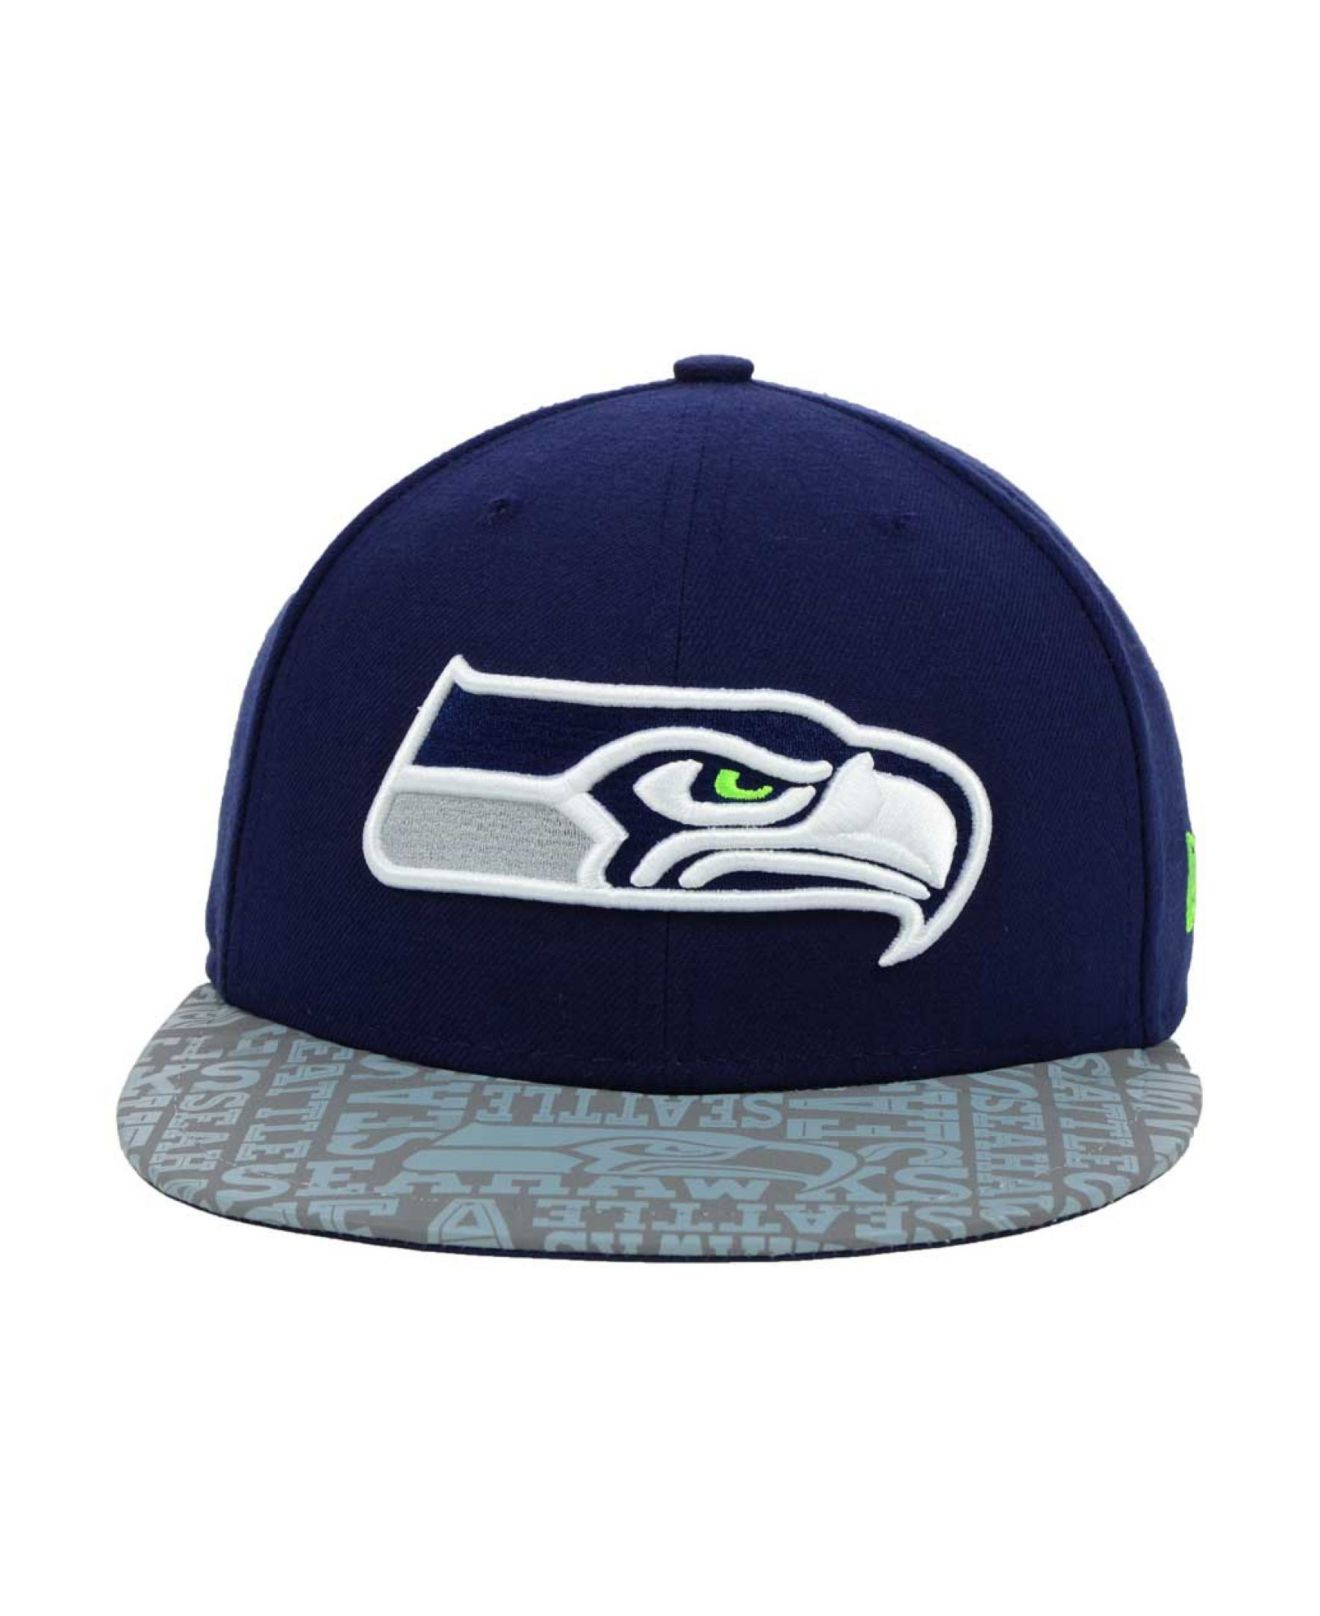 ... wholesale lyst ktz seattle seahawks nfl draft 59fifty cap in gray for  men 47435 8bd46 68a375b1c377